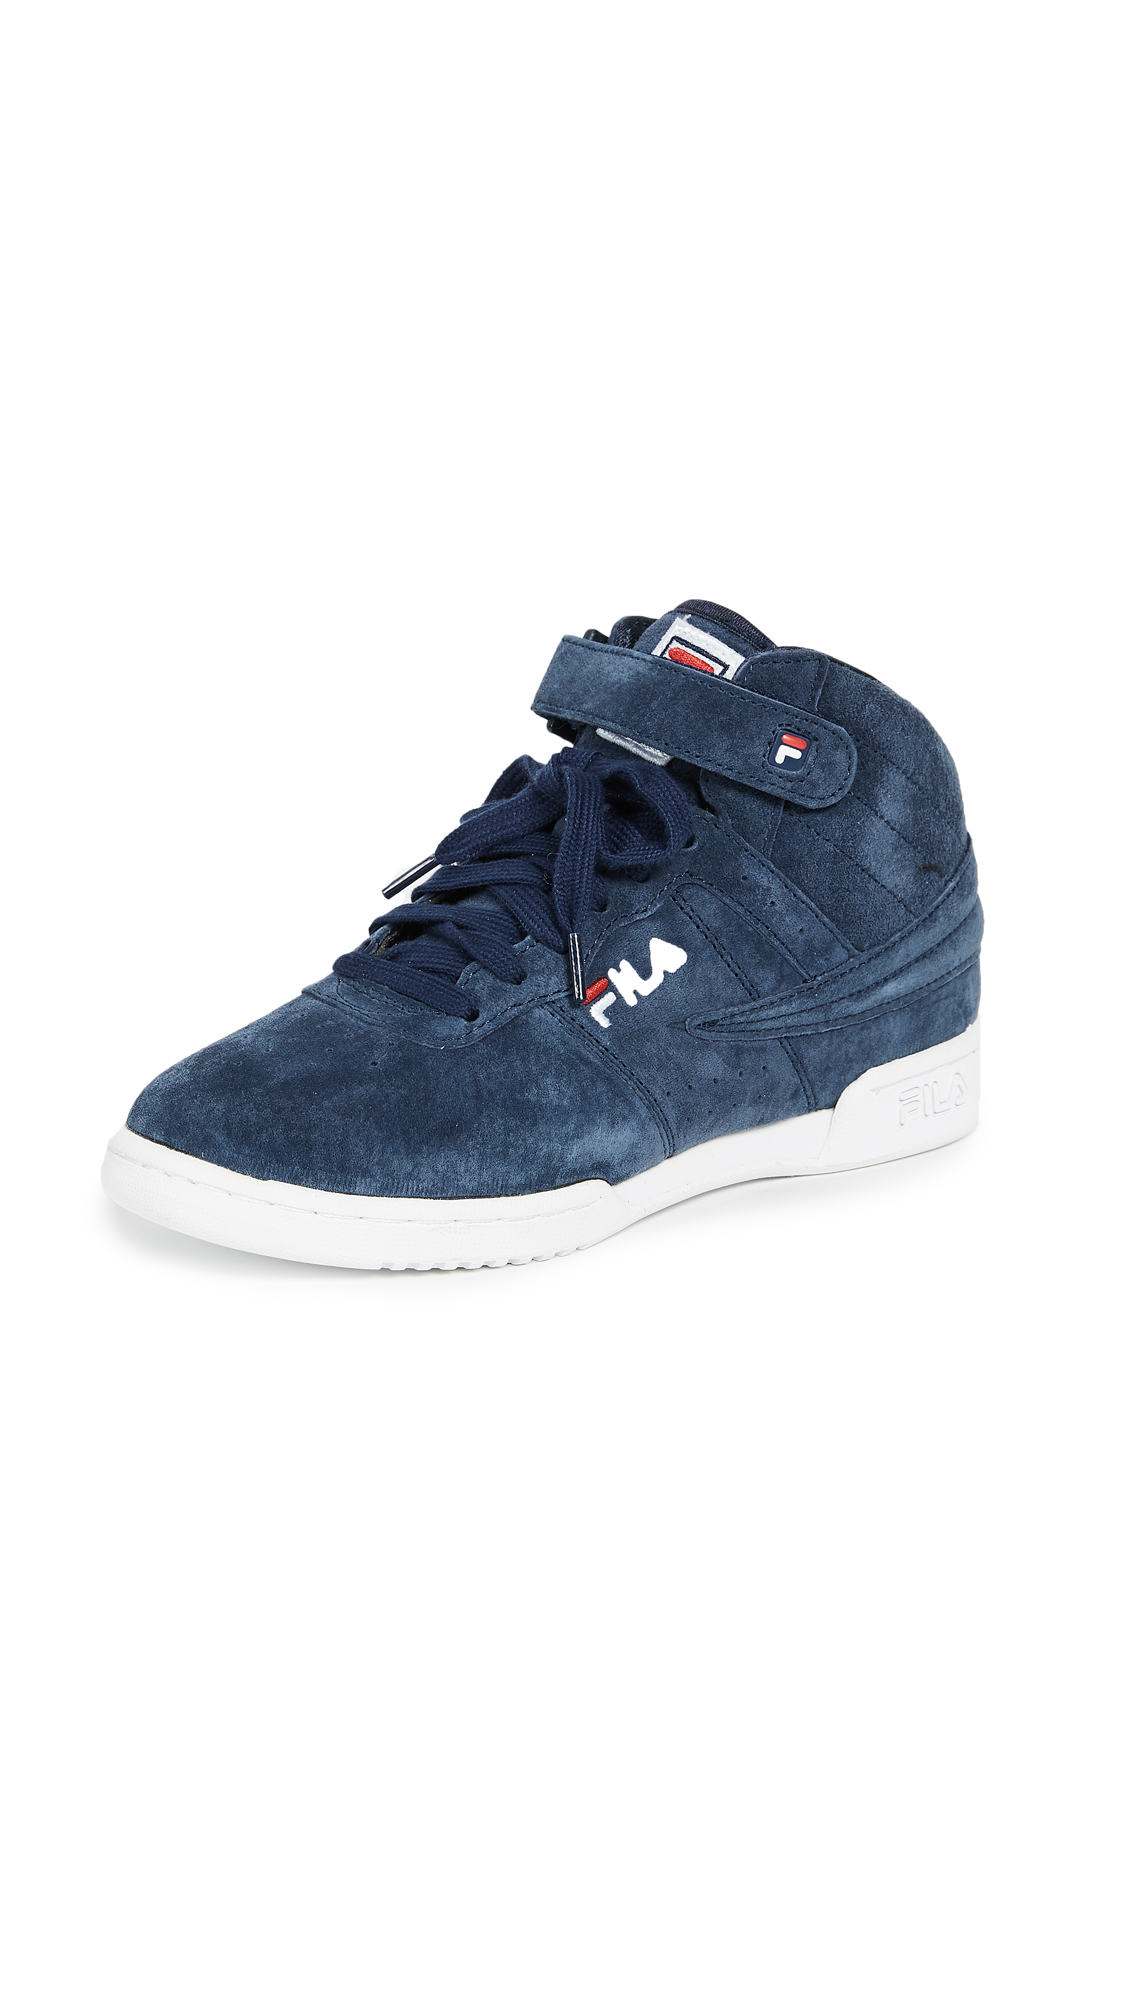 Fila F-13 Sneakers - Fila Navy/White/Fila Red